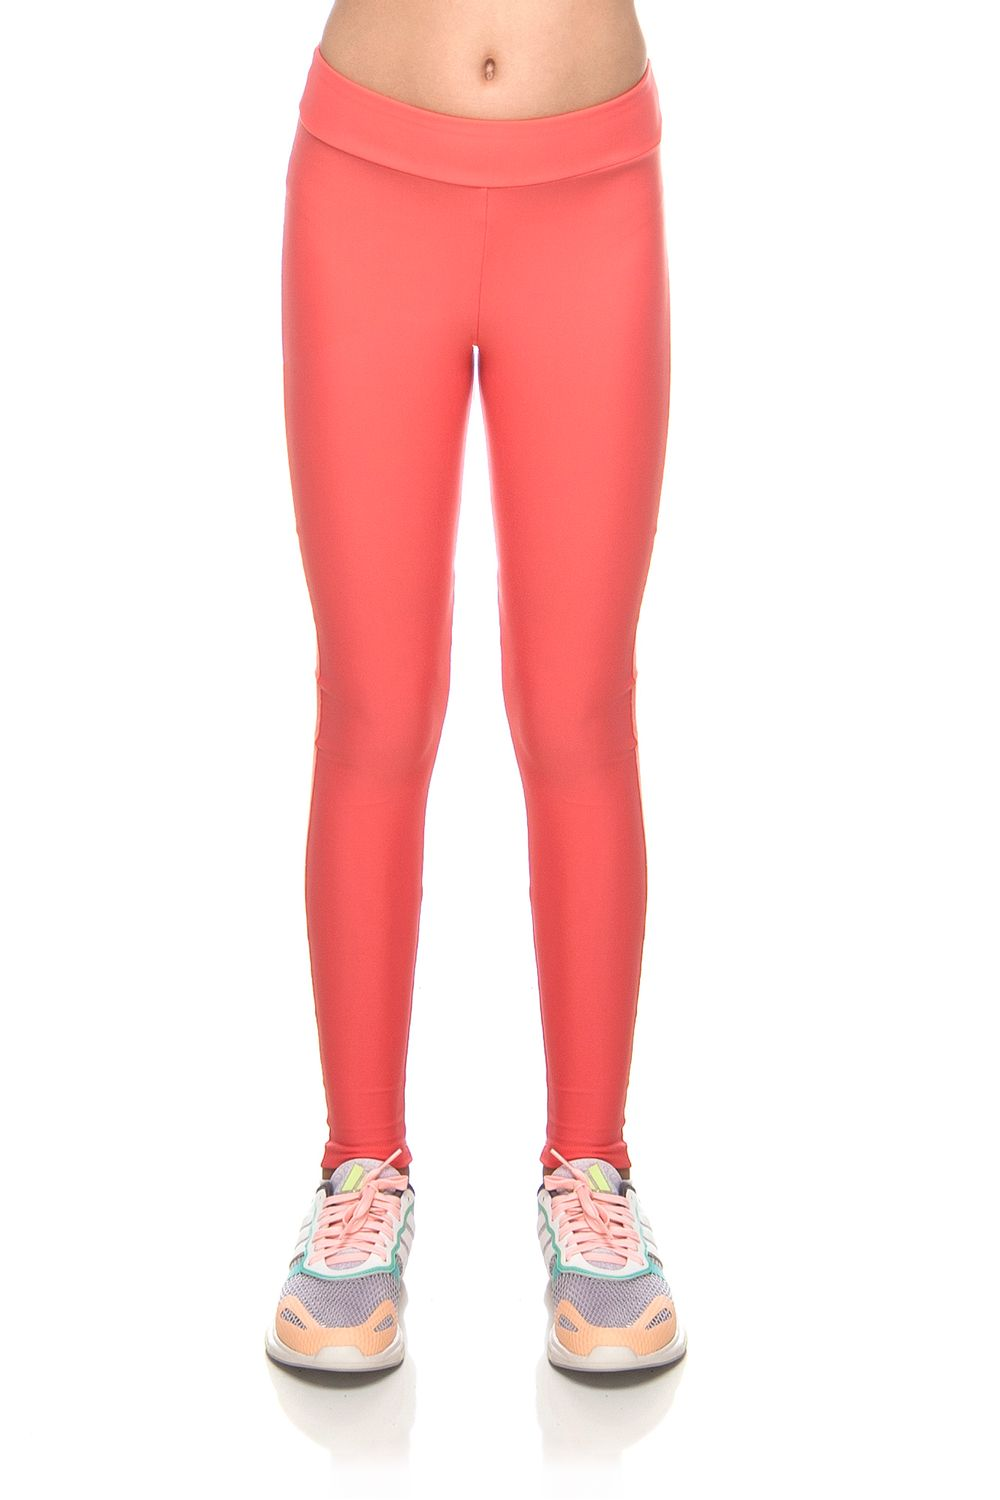 Leggings-Fitness-Kids-Pontinho-Cirre---9-